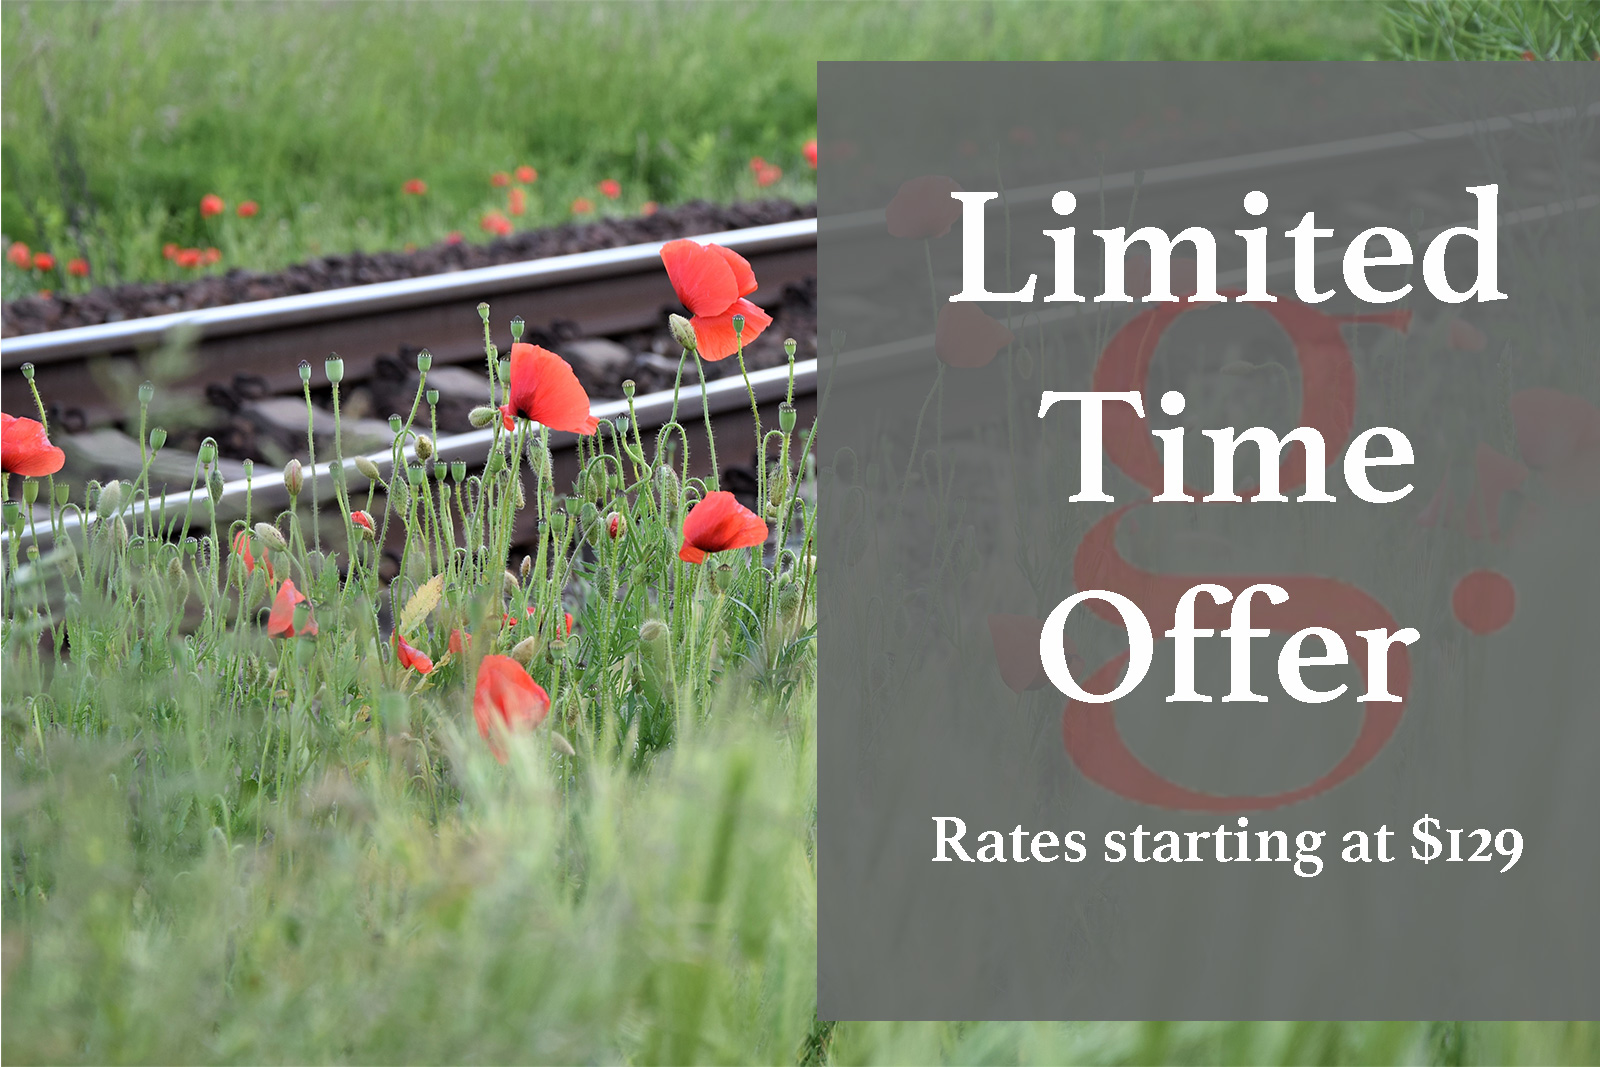 Limited Time Offer at The George Hotel in College Station, Texas